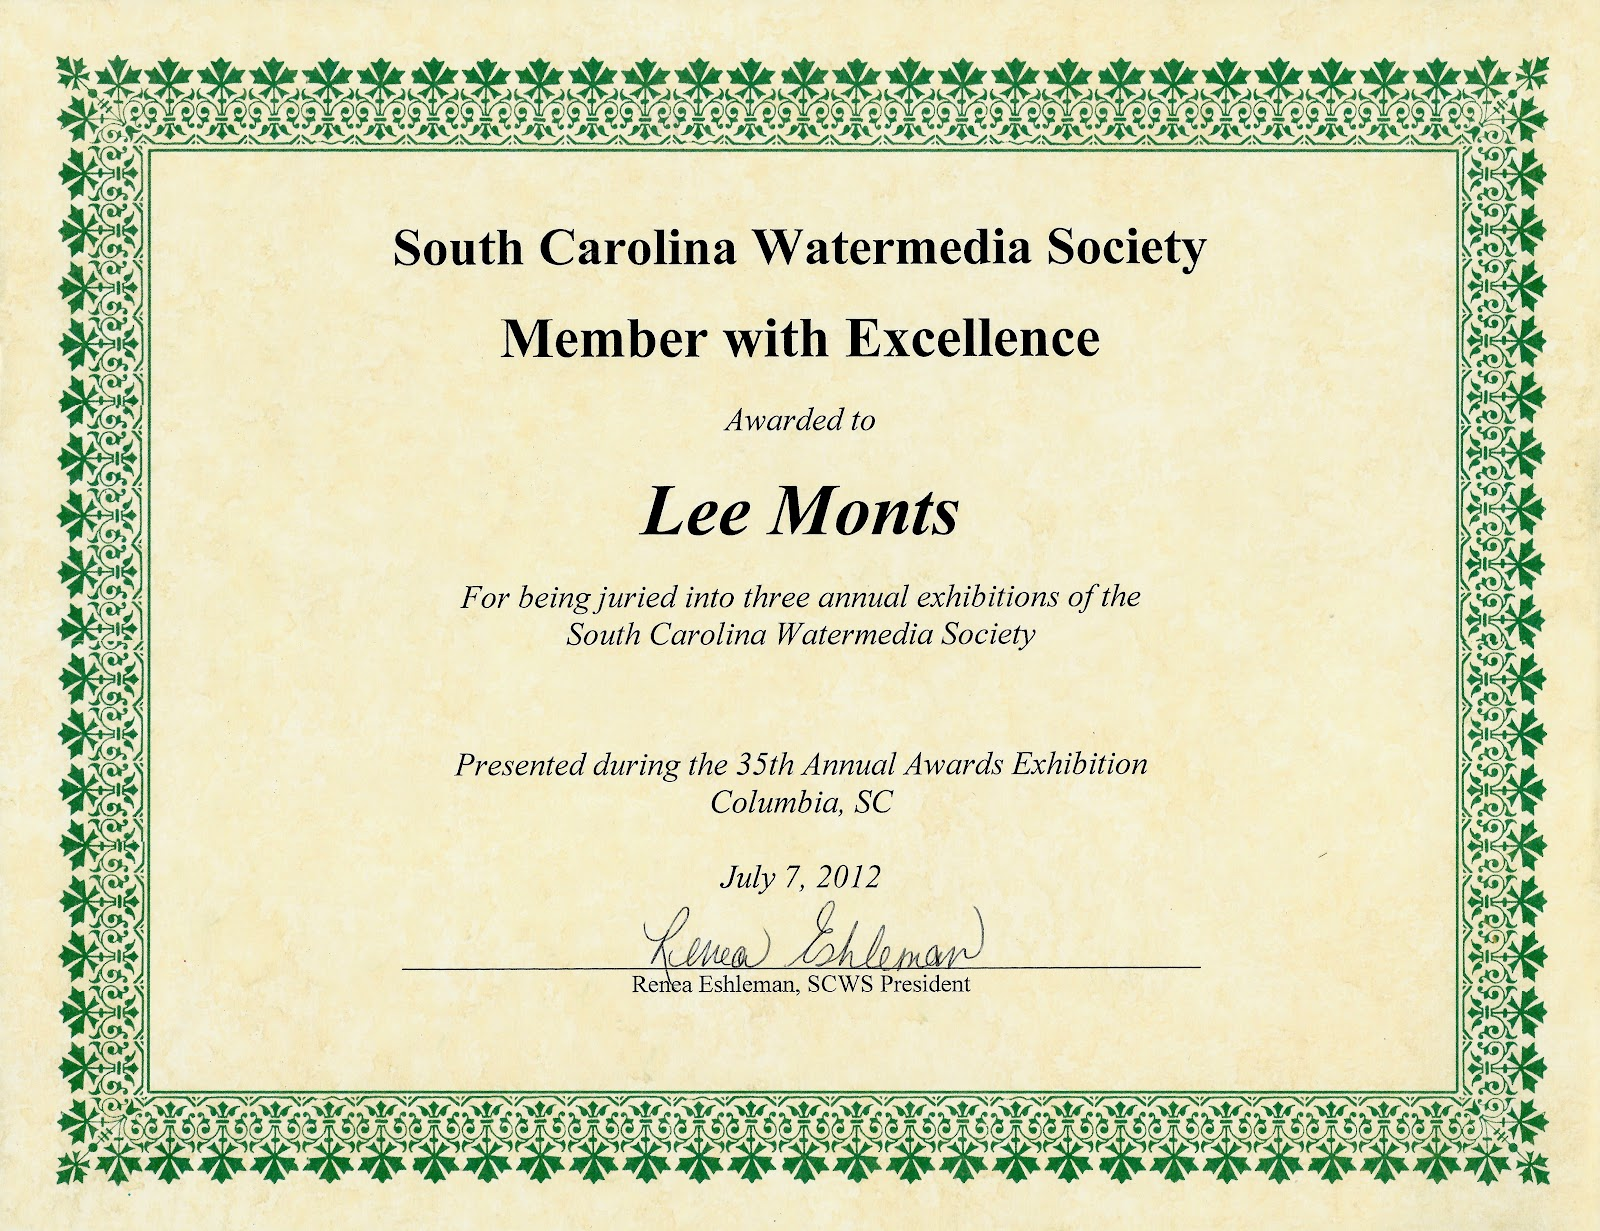 323 art lee monts the certificate 1betcityfo Images